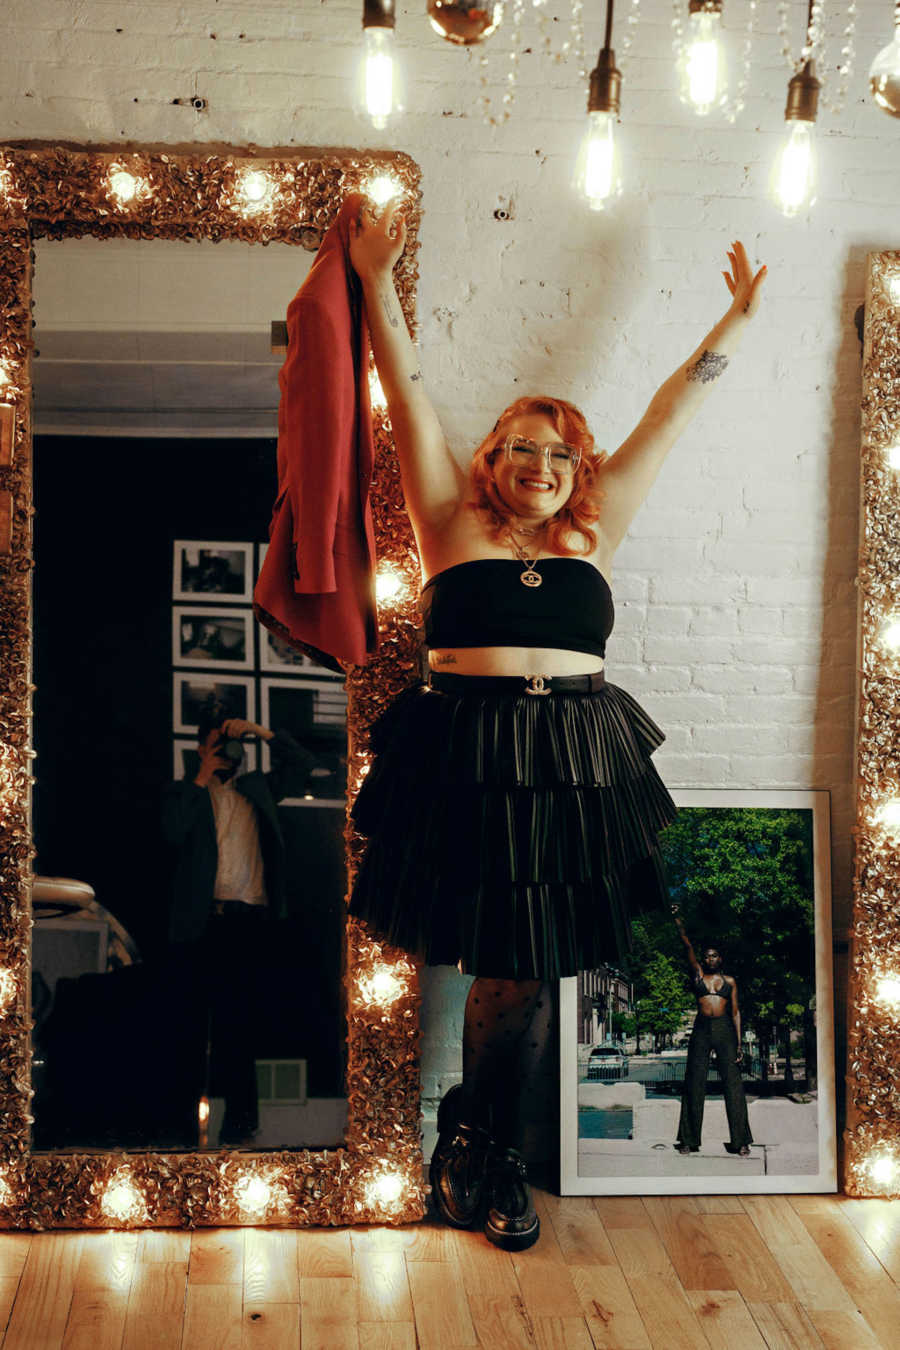 Woman wearing black crop top and black skirt holding arms above head in front of lighted mirror and white brick wall